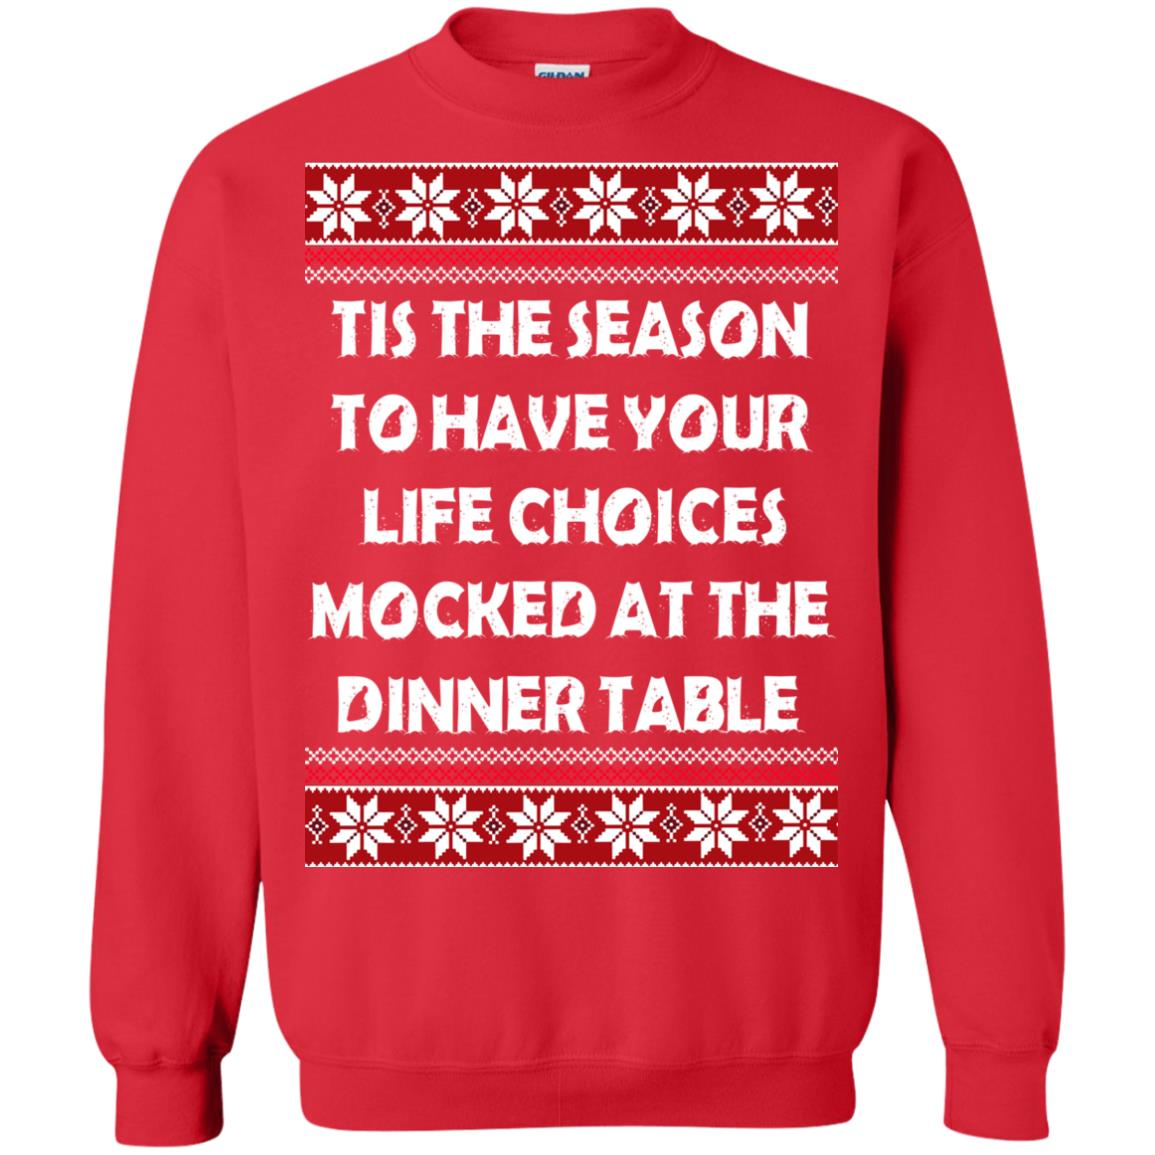 image 5898 - Tis The Season To Have Your Life Choices Mocked Christmas Sweater, Hoodie